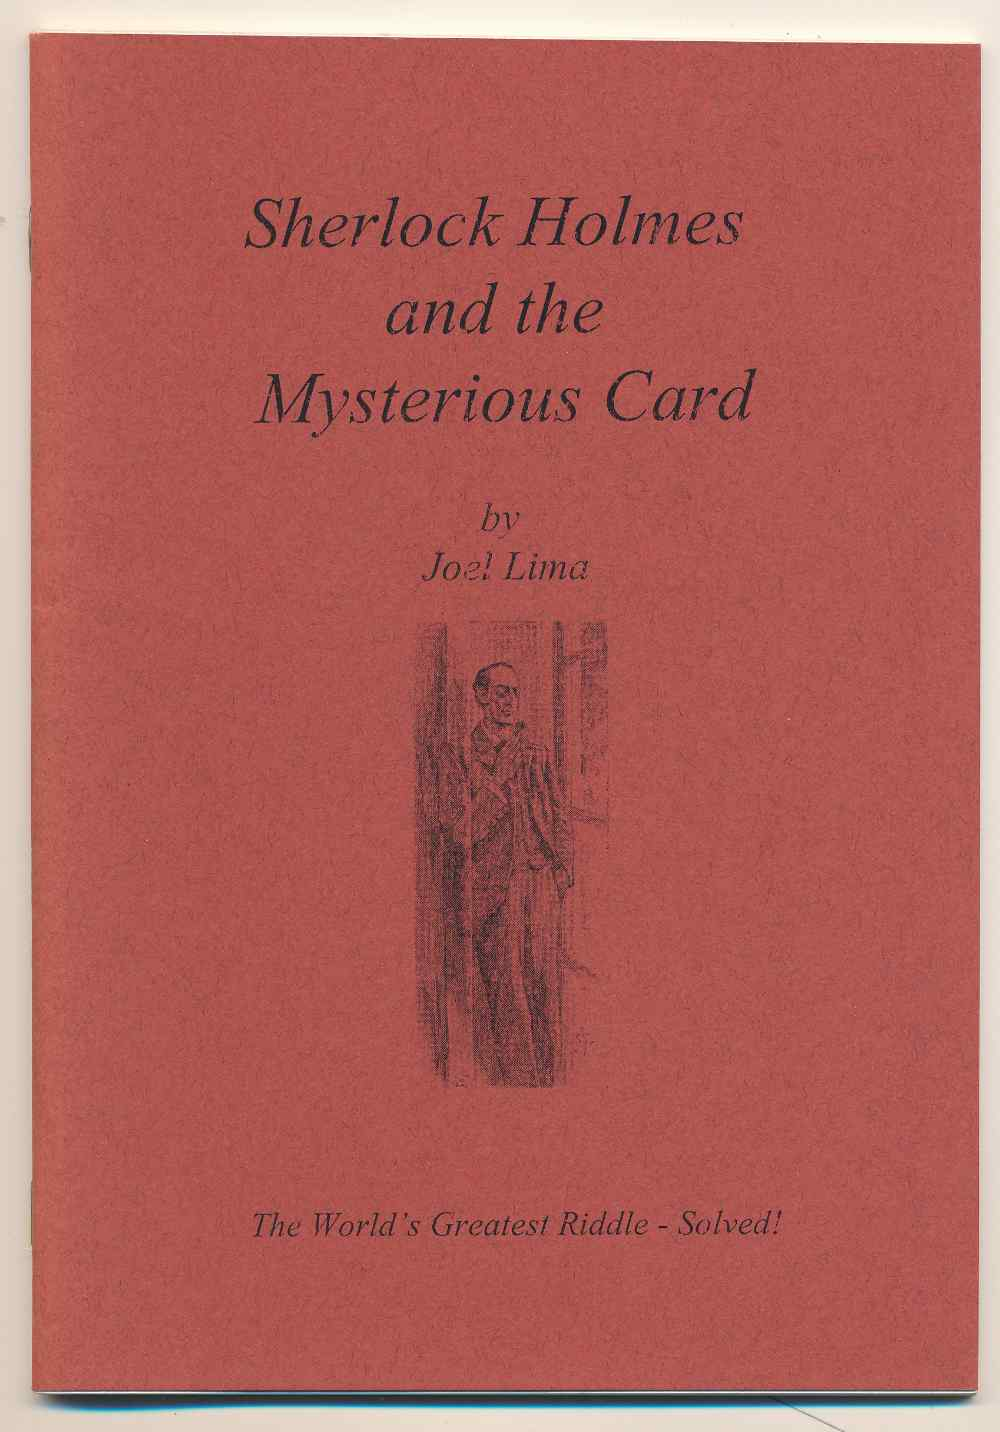 Sherlock Holmes and the mysterious card